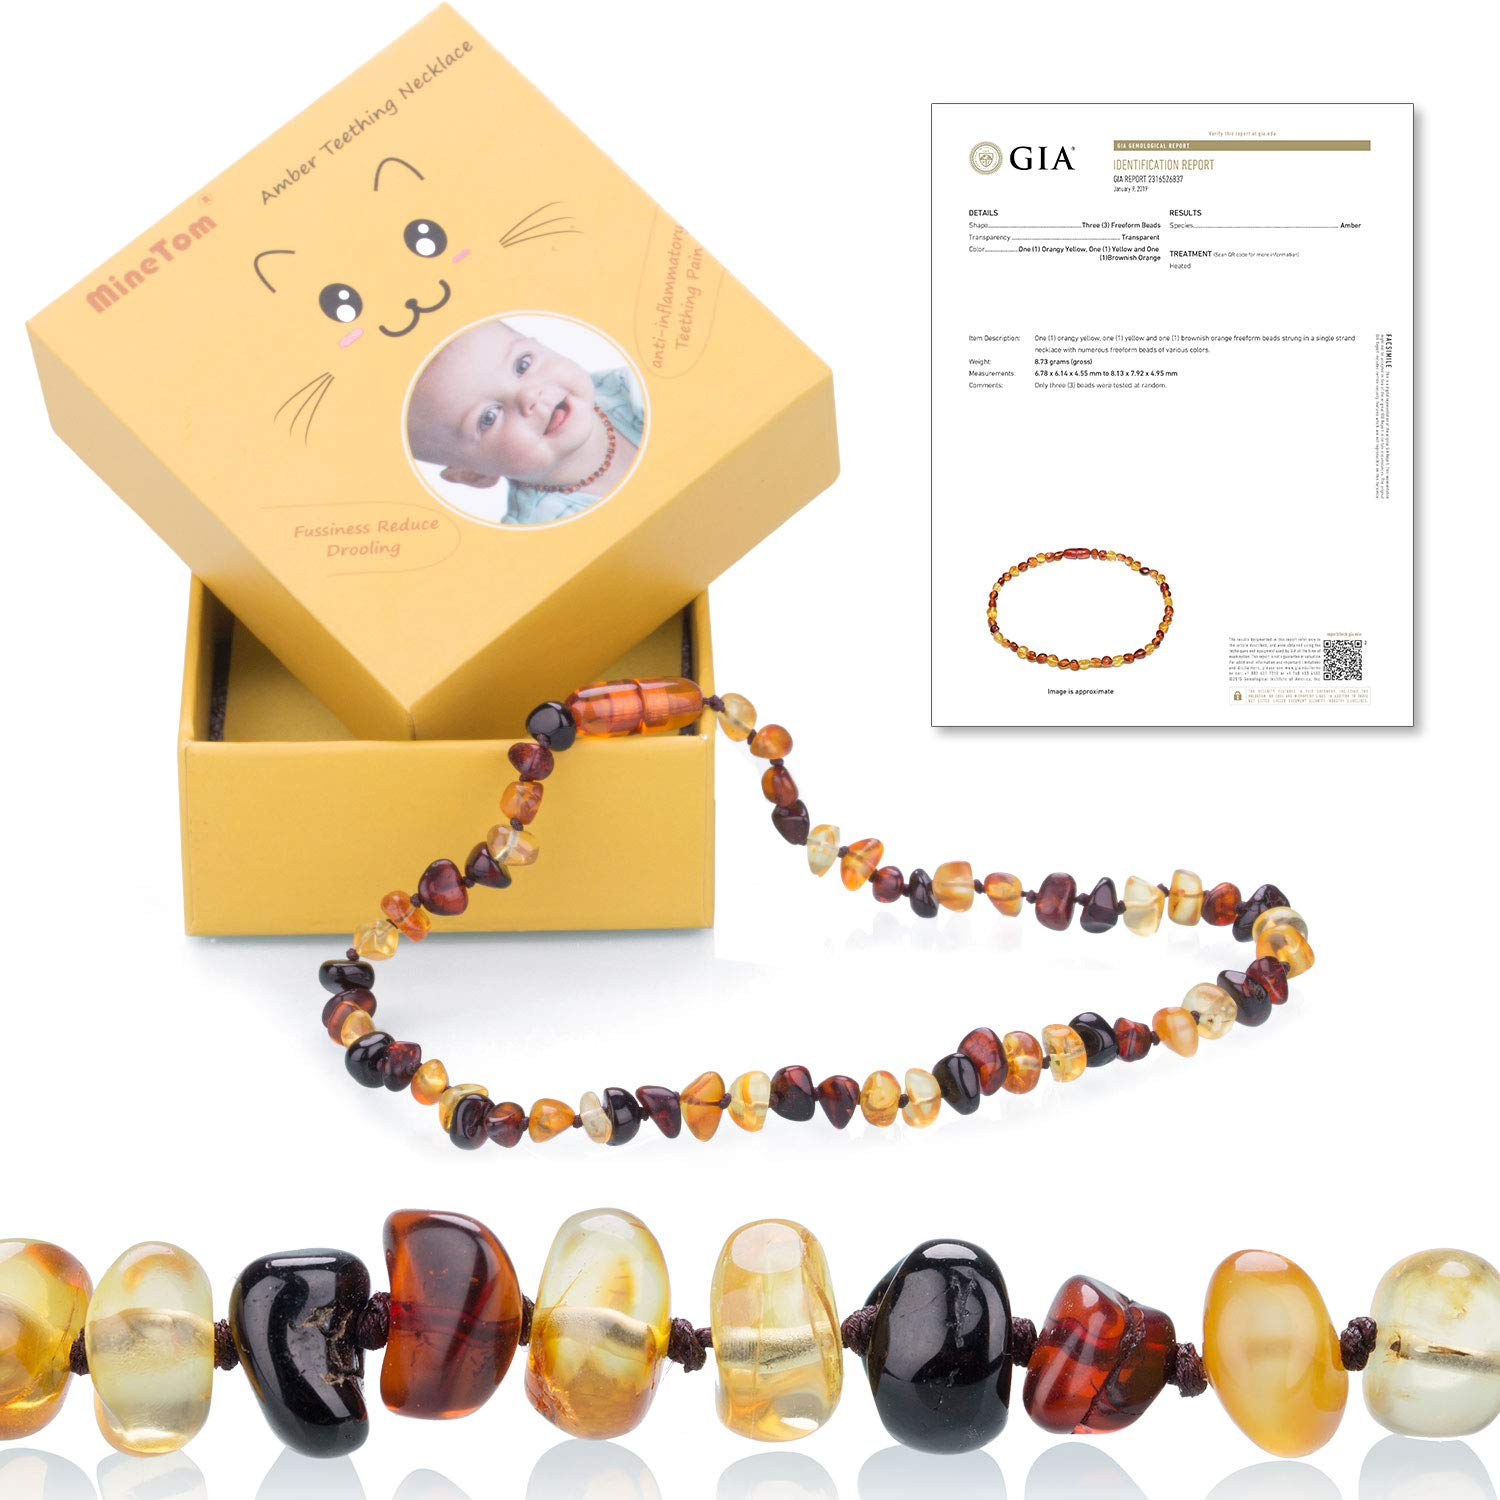 Minetom Baltic Amber Teething Necklace for Baby,Anti Inflammatory, Drooling and Natural Teething Pain Relief,GIA Certified 100% Pure Baltic Amber Unisex Baby Necklace,Cherry-Honey